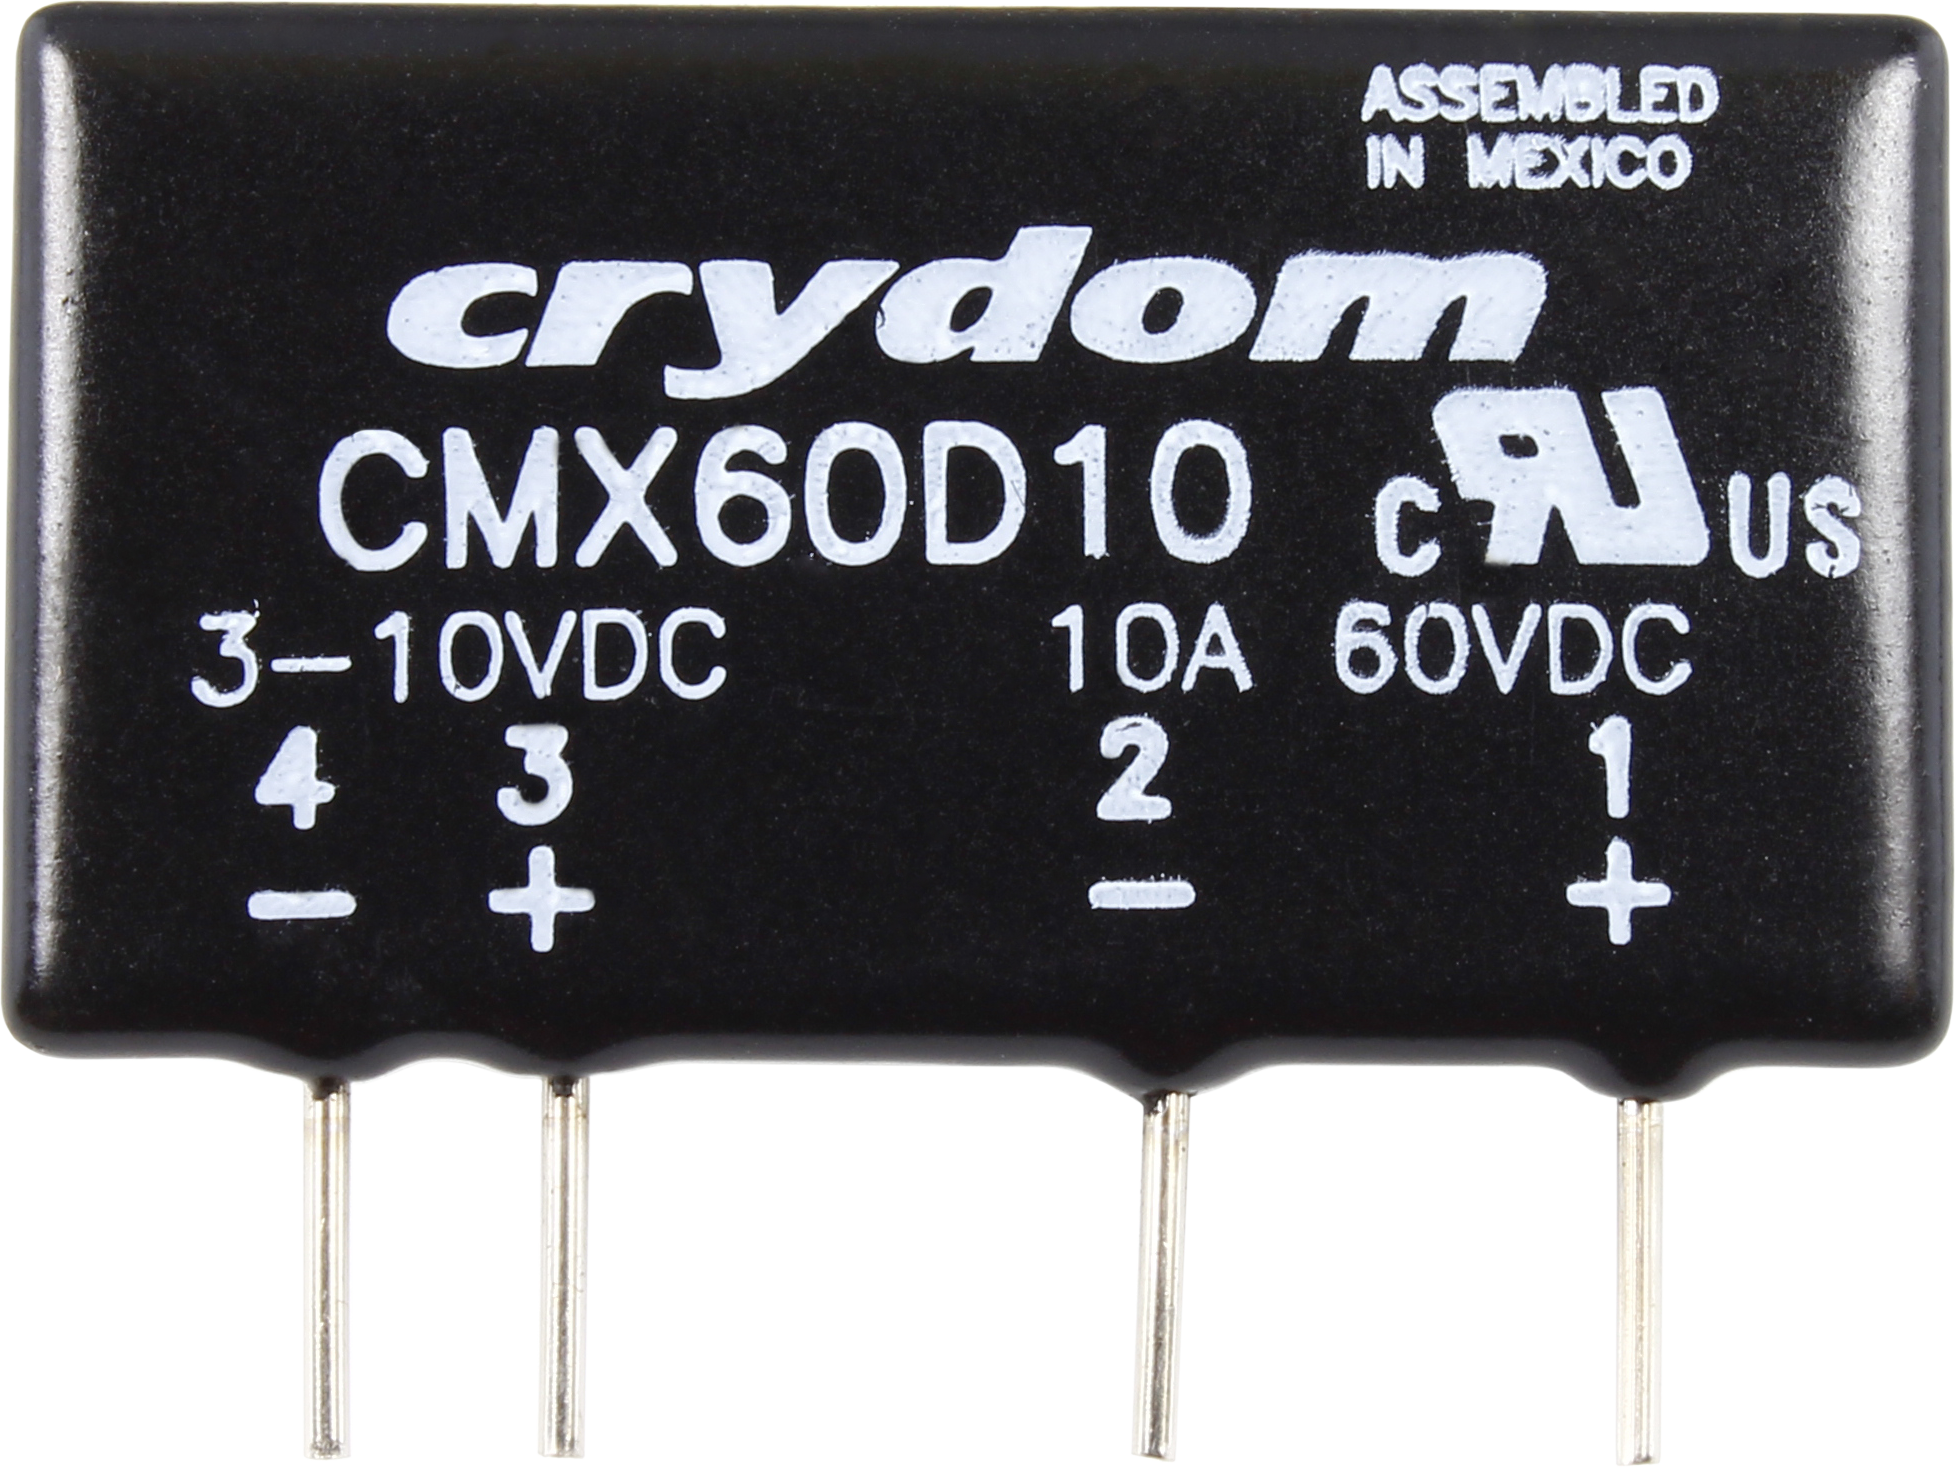 Crydom Cmx60d10 10a60vdc Dc Solid State Relay Requires Forced Air Basic Relays Please